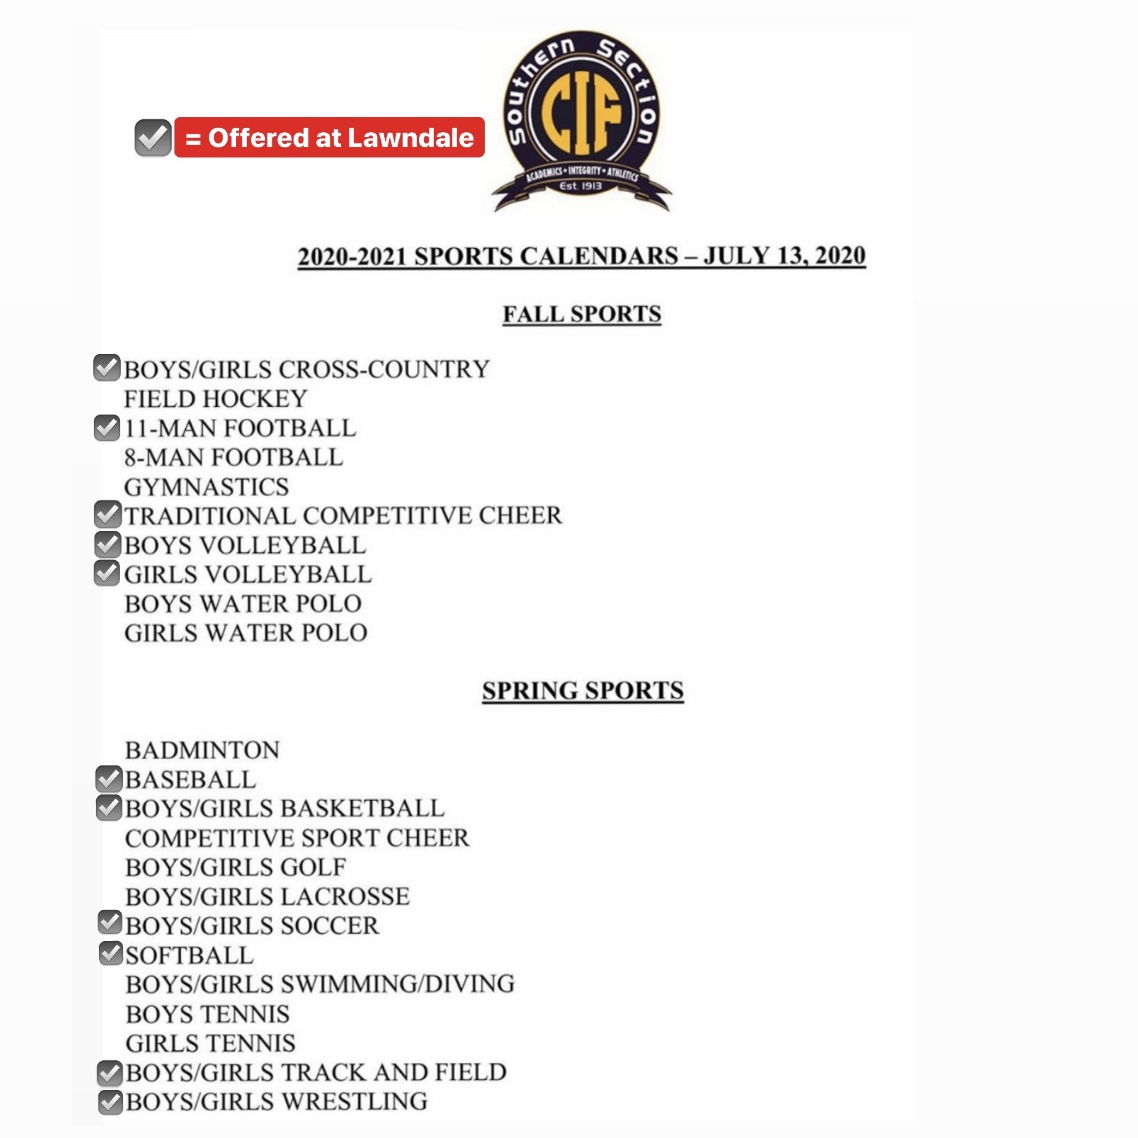 IMPORTANT UPDATE: CIF Sports Calendar